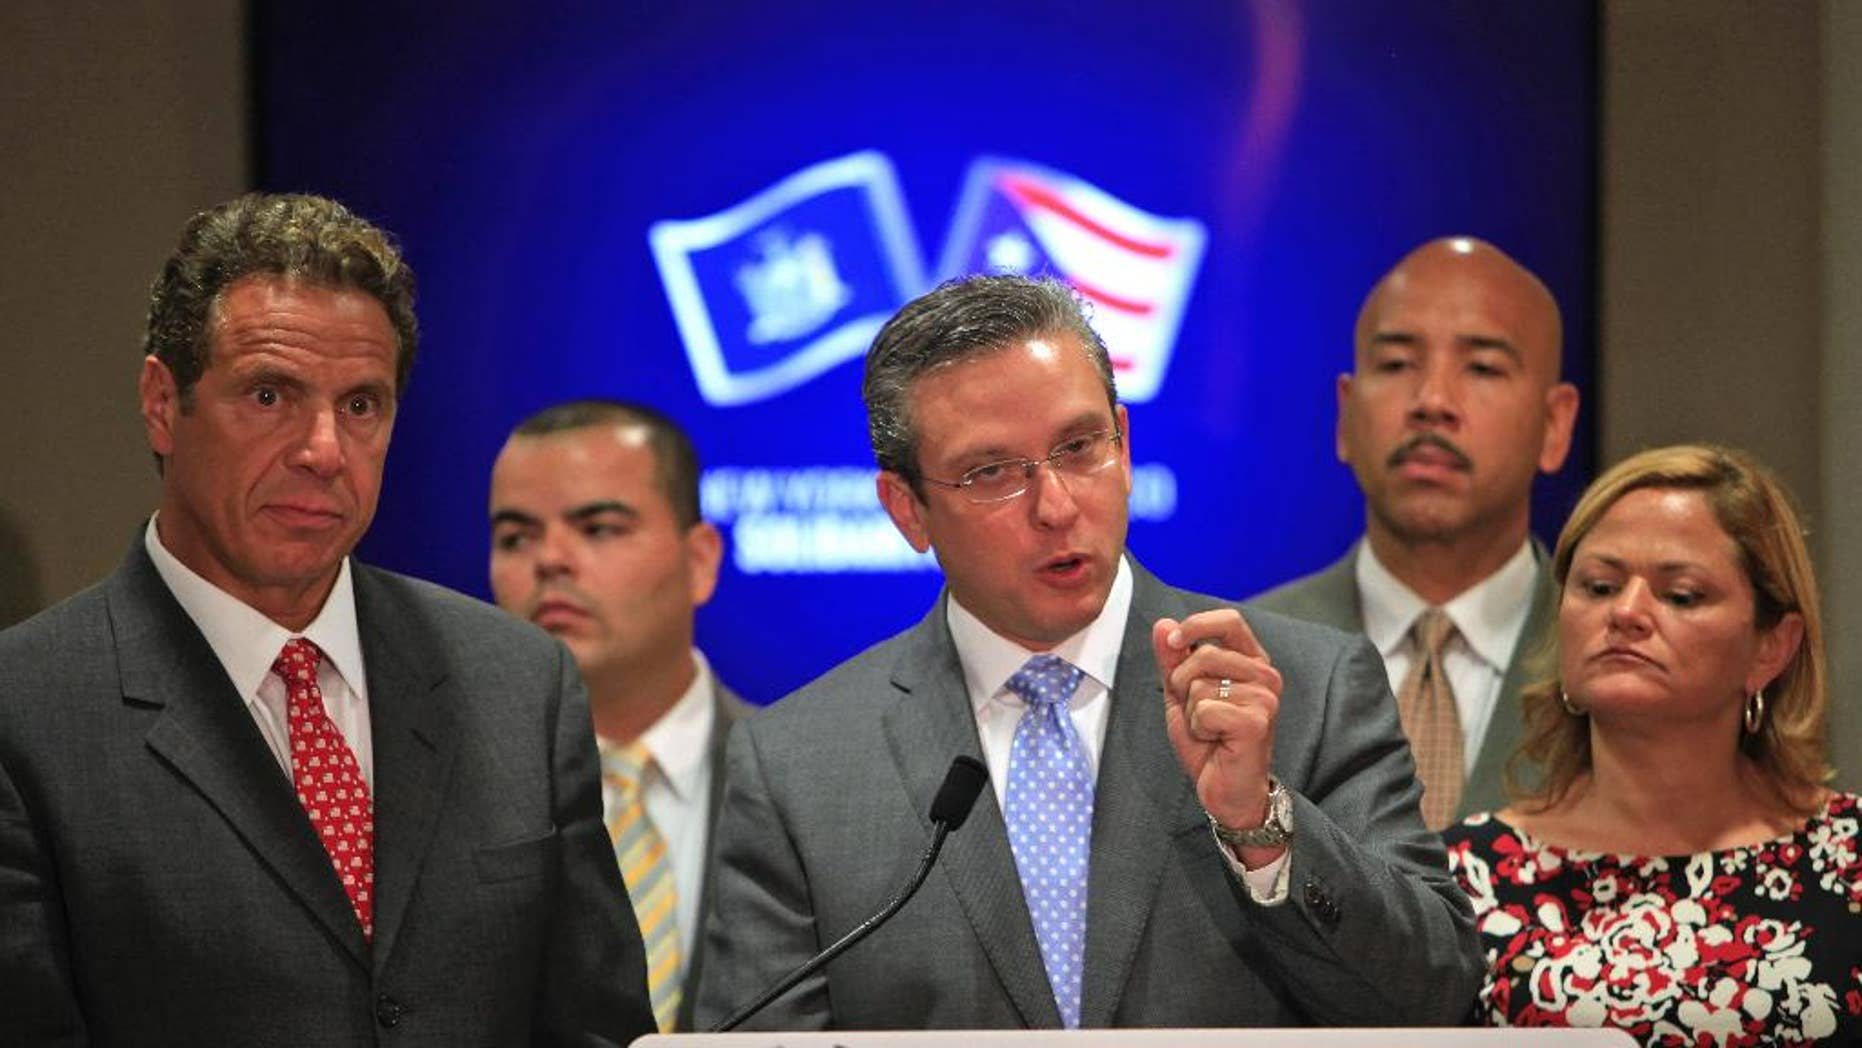 New York Gov. Andrew Cuomo, left, stands next to Puerto Rico Gov. Alejandro Garcia Padilla, during a joint news conference in San Juan, Puerto Rico, Tuesday, Sept. 8, 2015. Cuomo and a delegation of top state officials met with Puerto Rico's Gov. Alejandro Garcia Padilla, pictured left, on Tuesday to develop what he called a historic partnership with the U.S. territory to help it emerge from a deepening economic crisis. (AP Photo/Ricardo Arduengo)